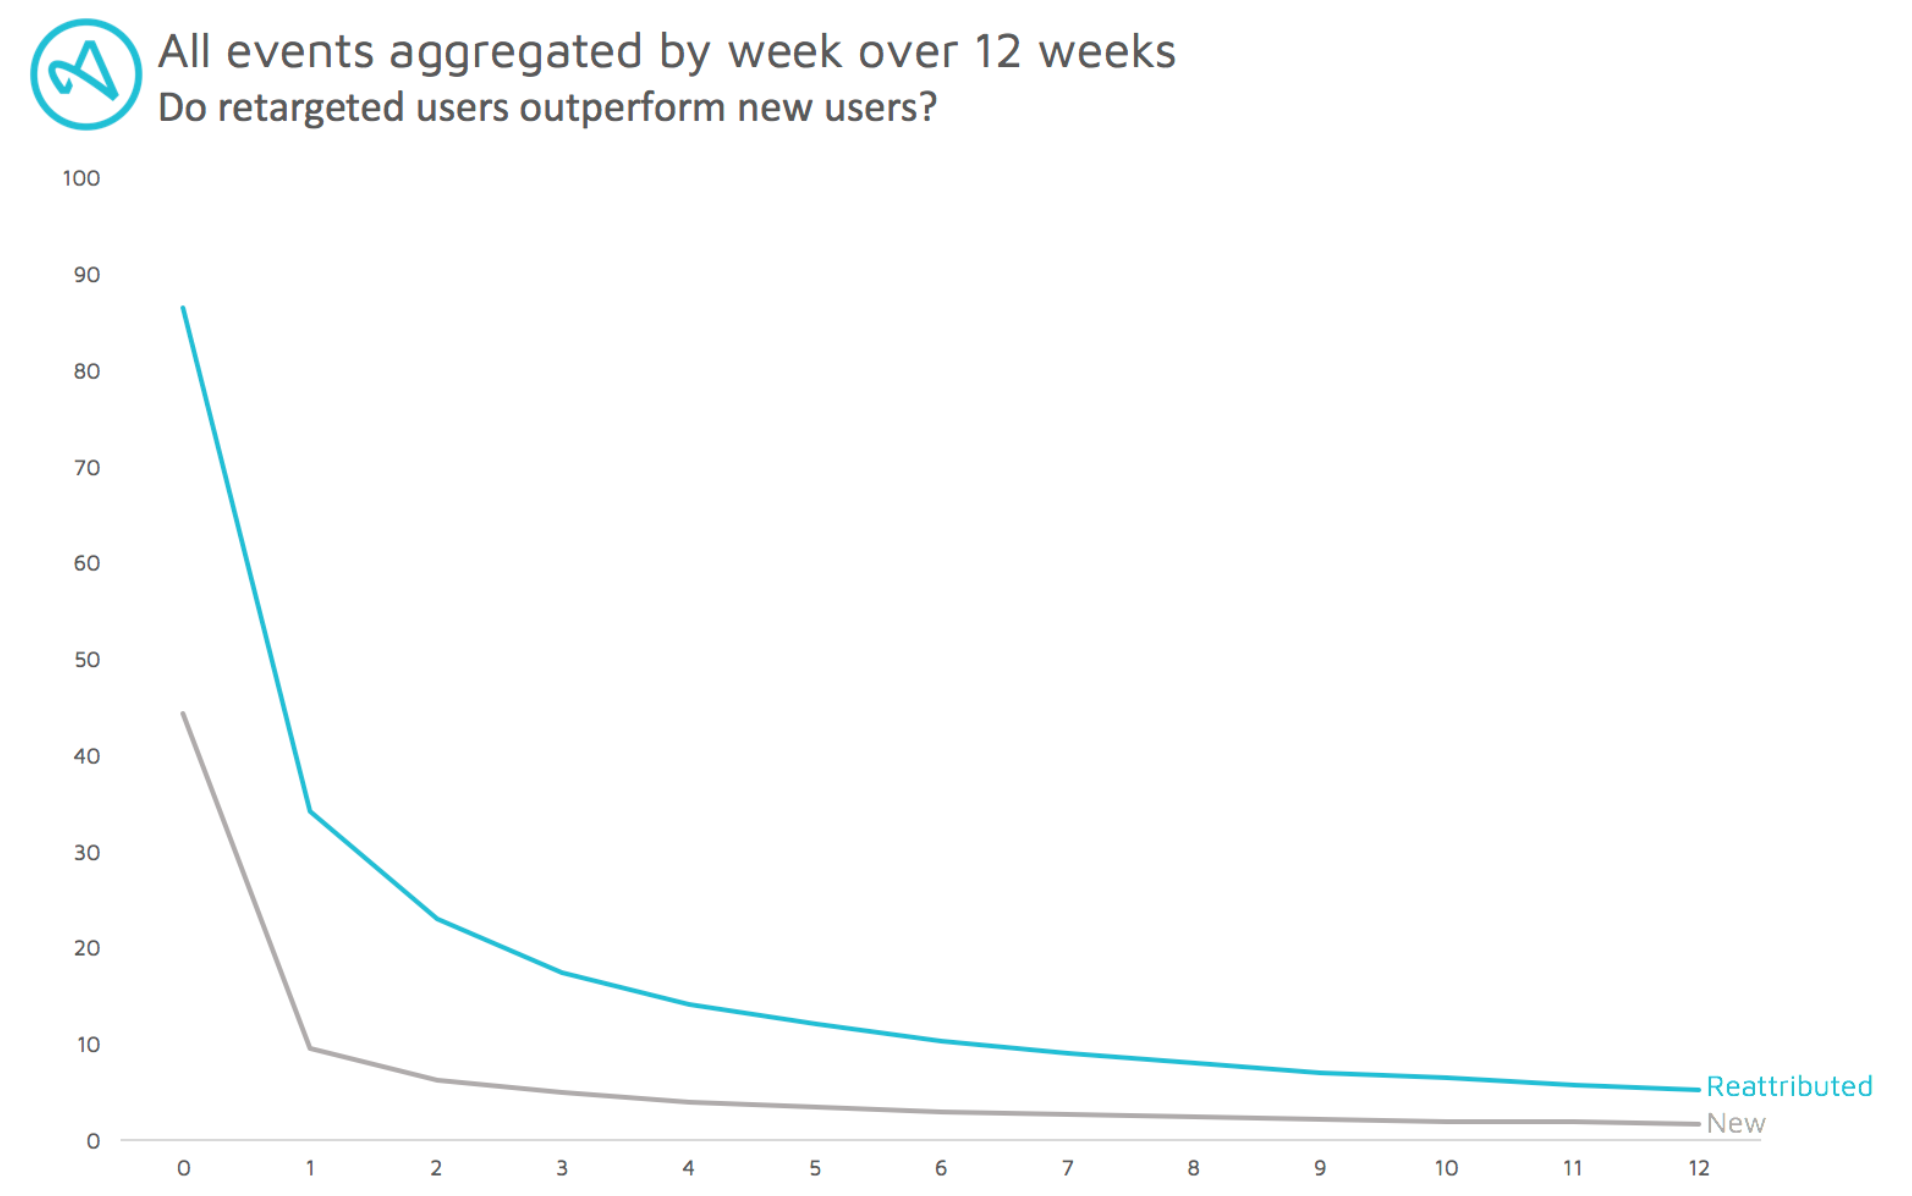 All events aggregated by week over 12 weeks graph